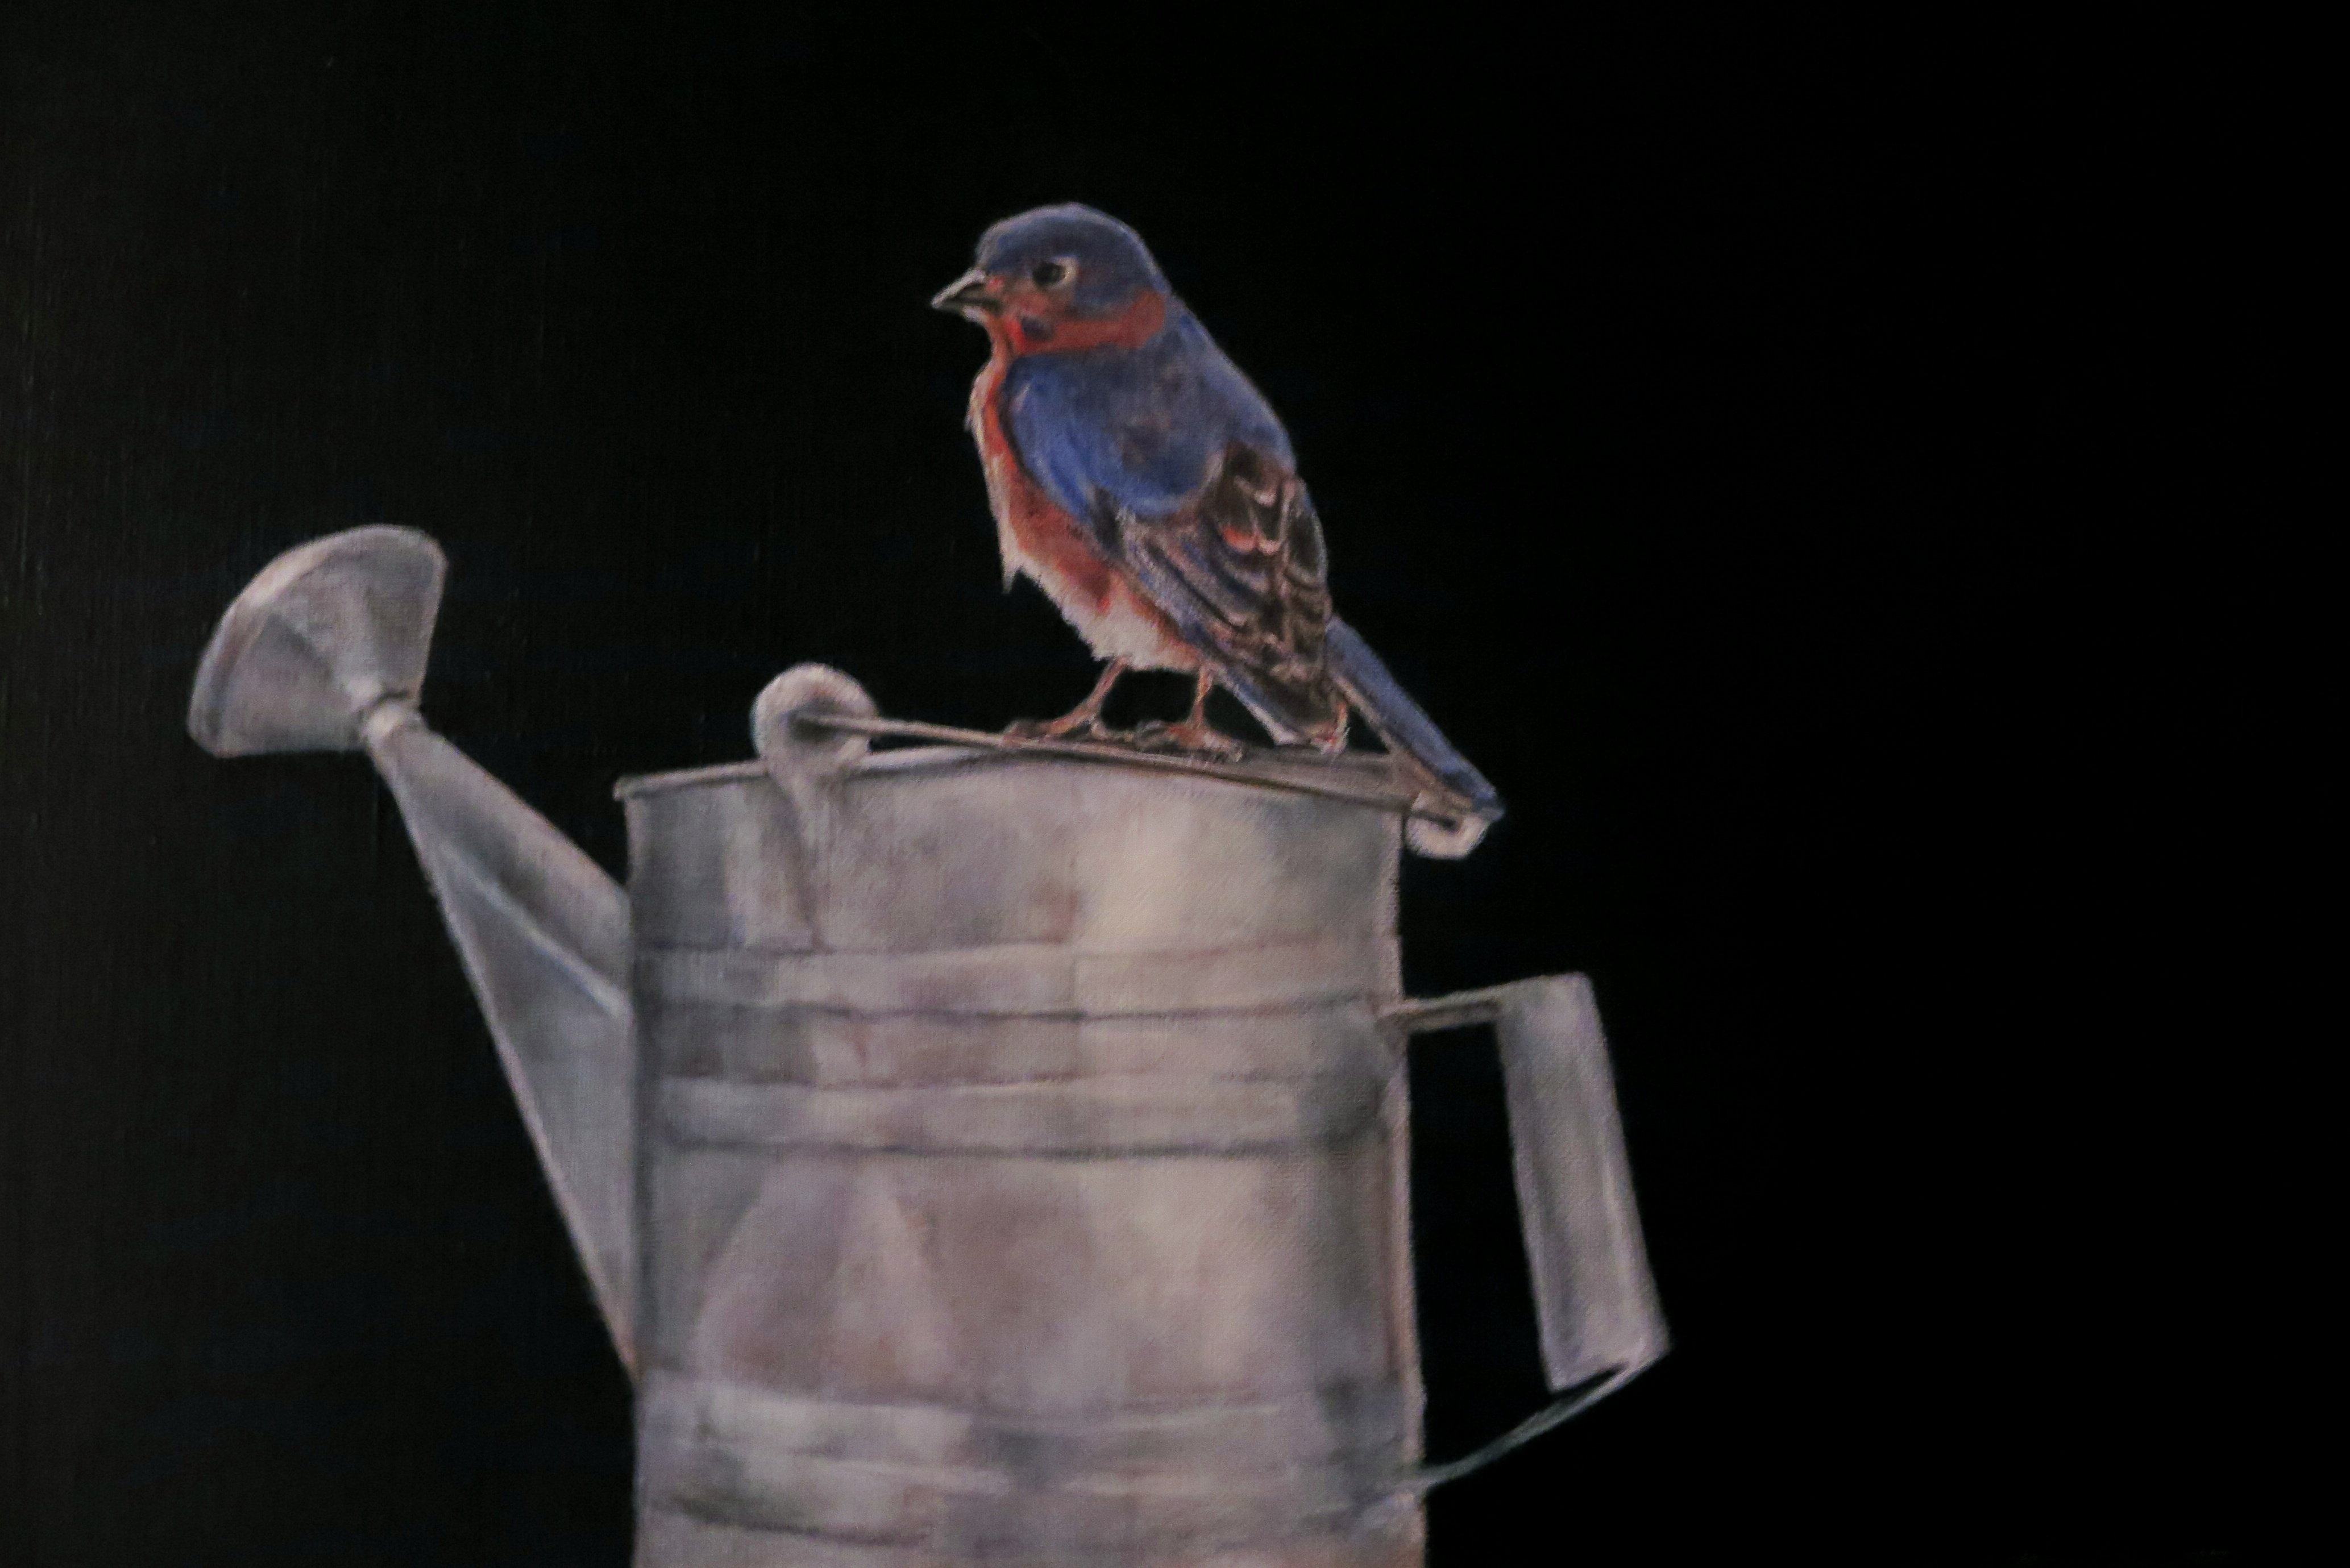 A Bluebird with Sprinkling Can